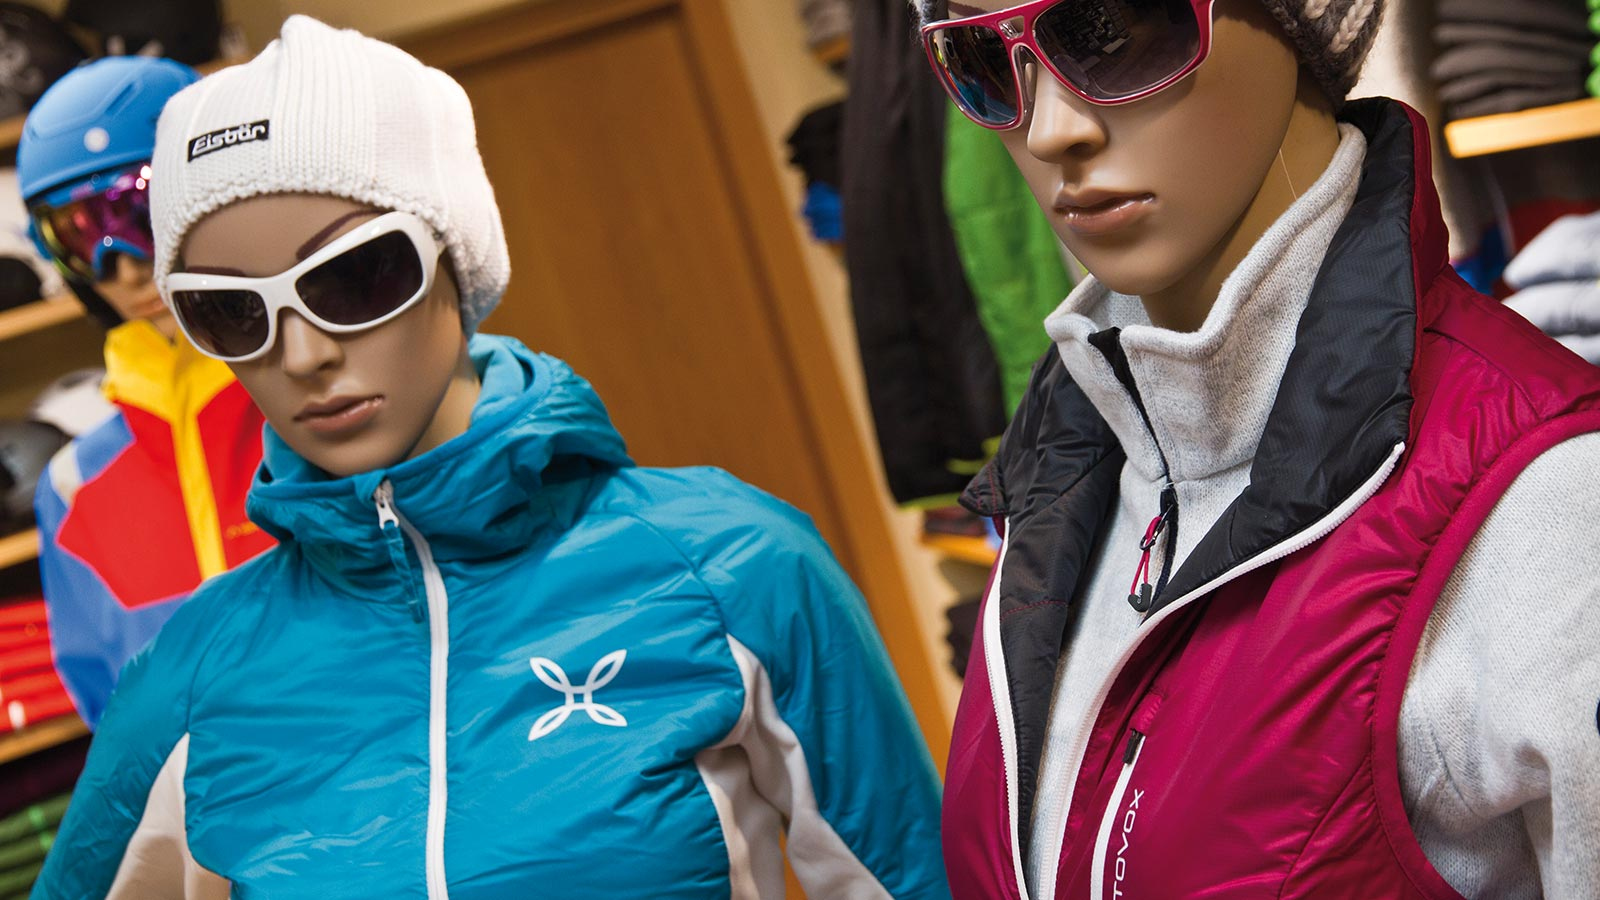 Two dummies at our ski service and equipment rental in Badia